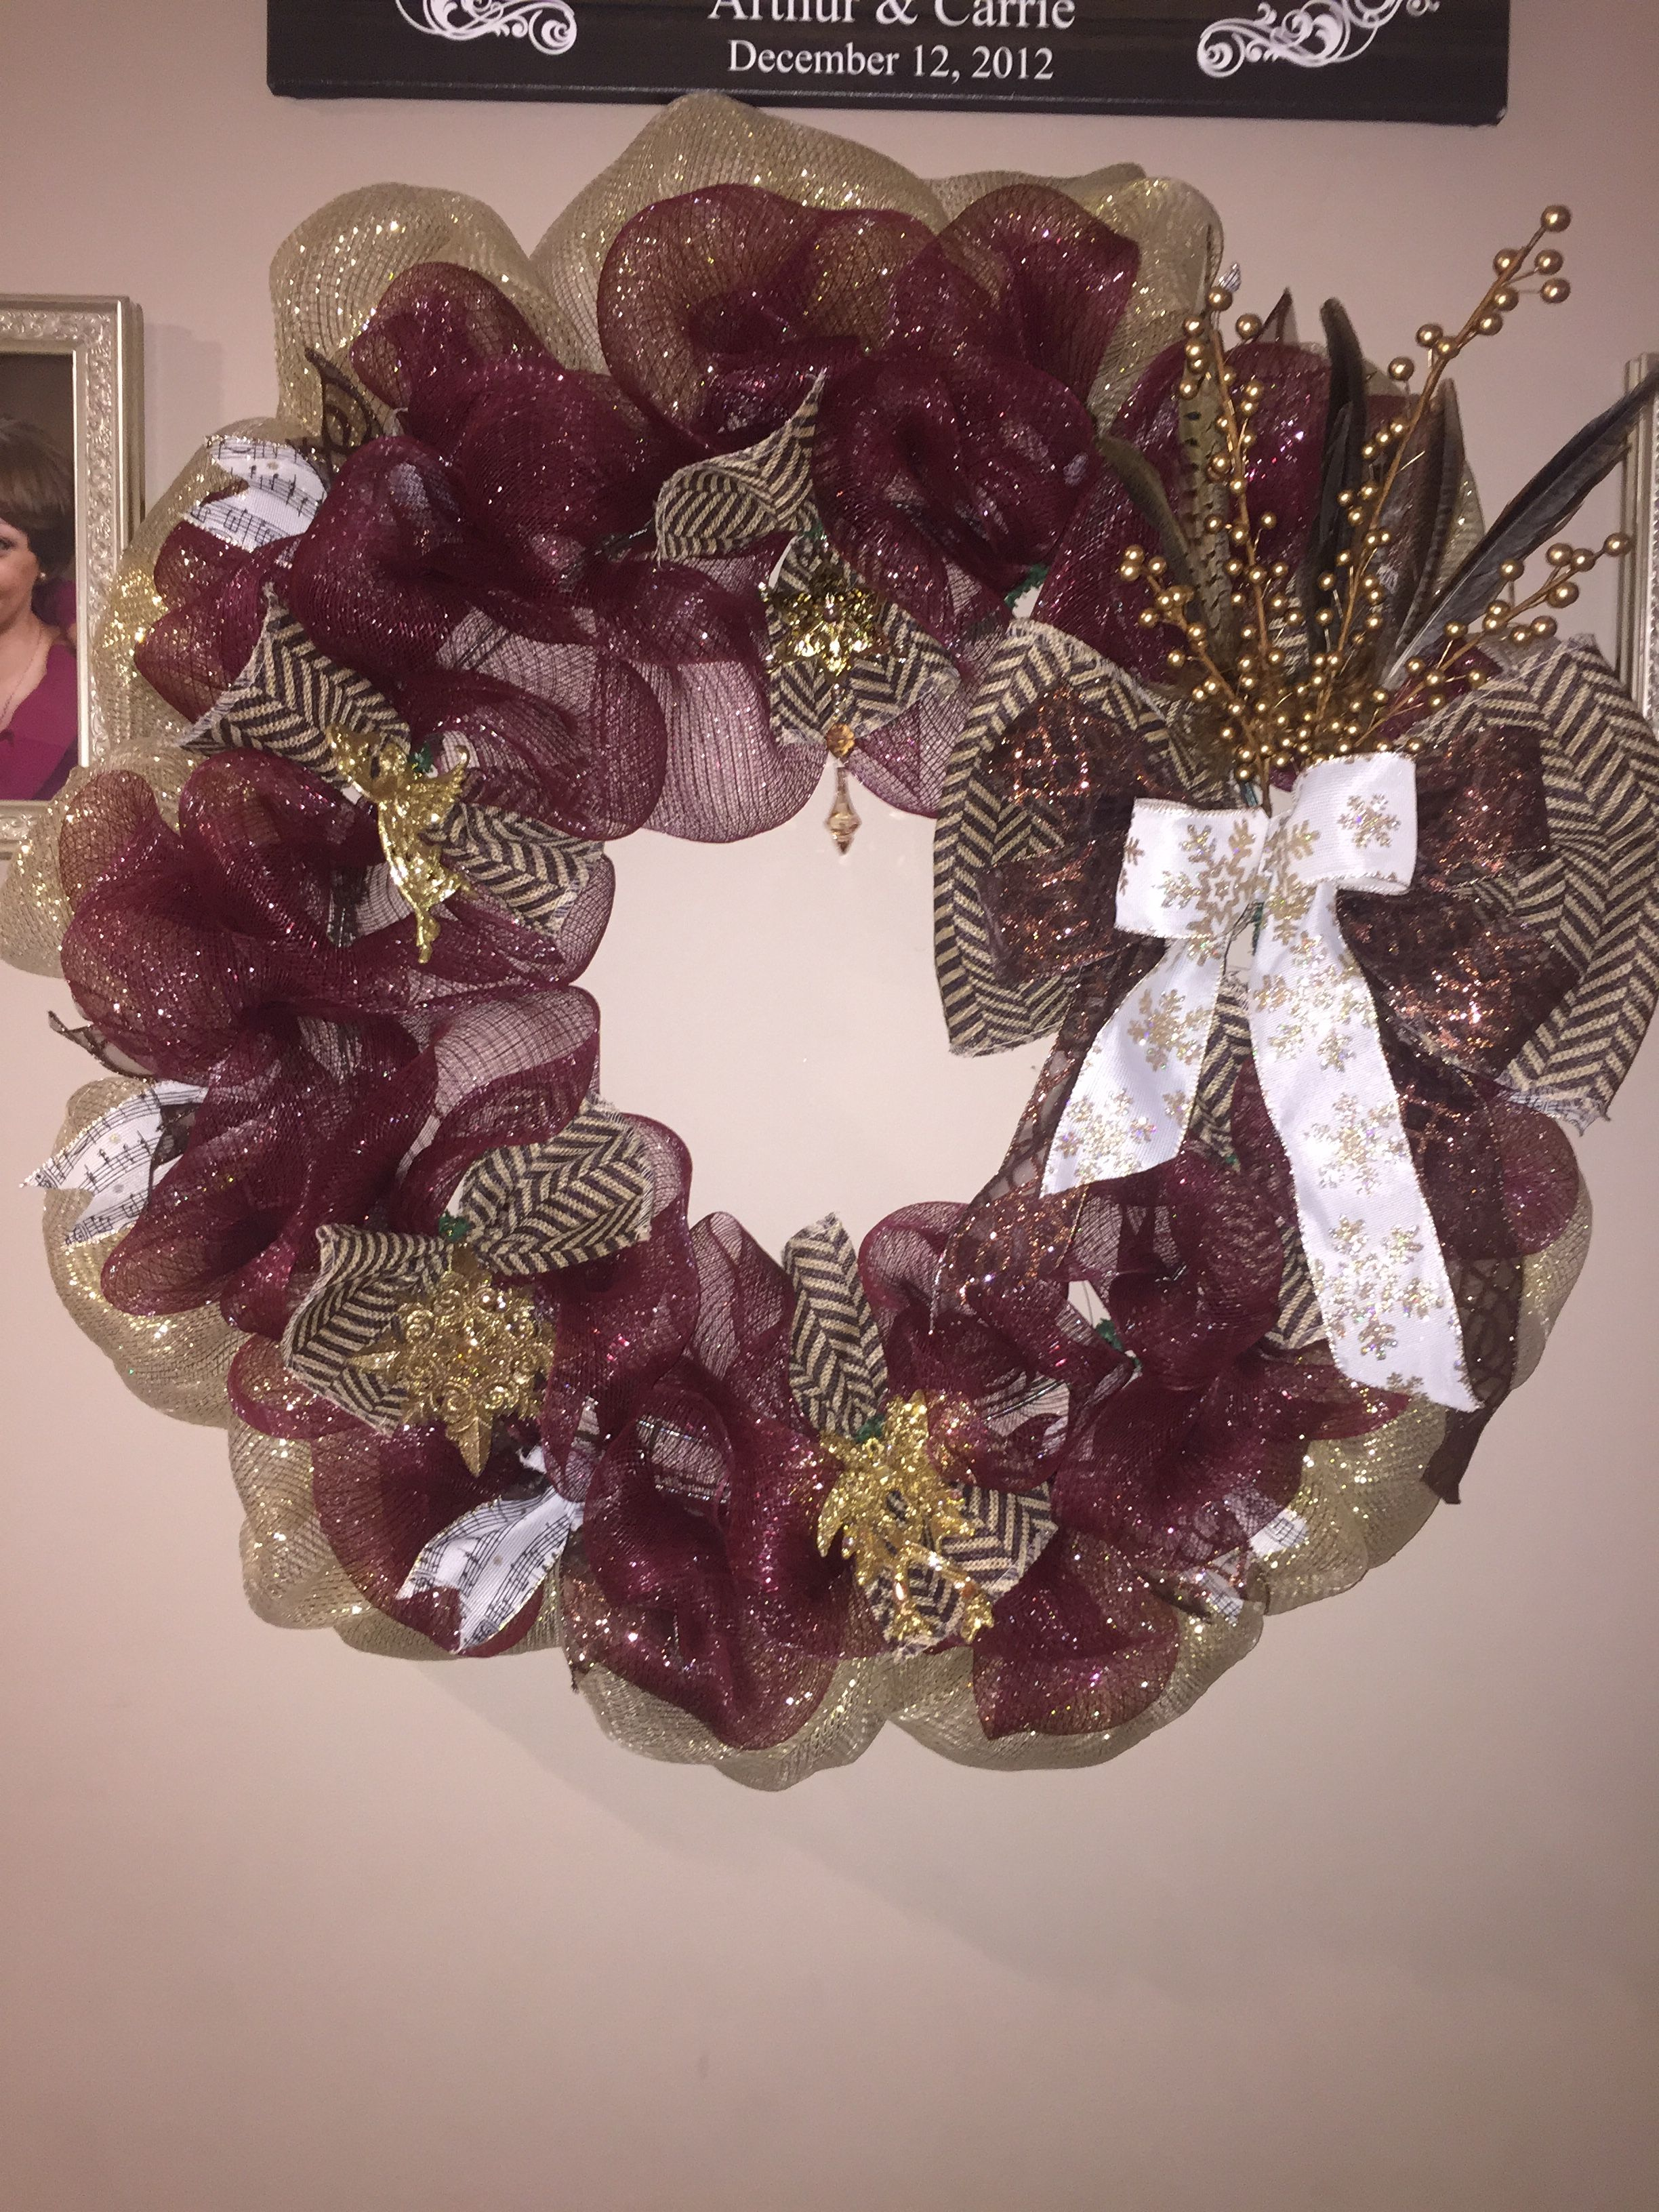 Burgundy and gold wreath with angels and star ornaments and feathers made by me.